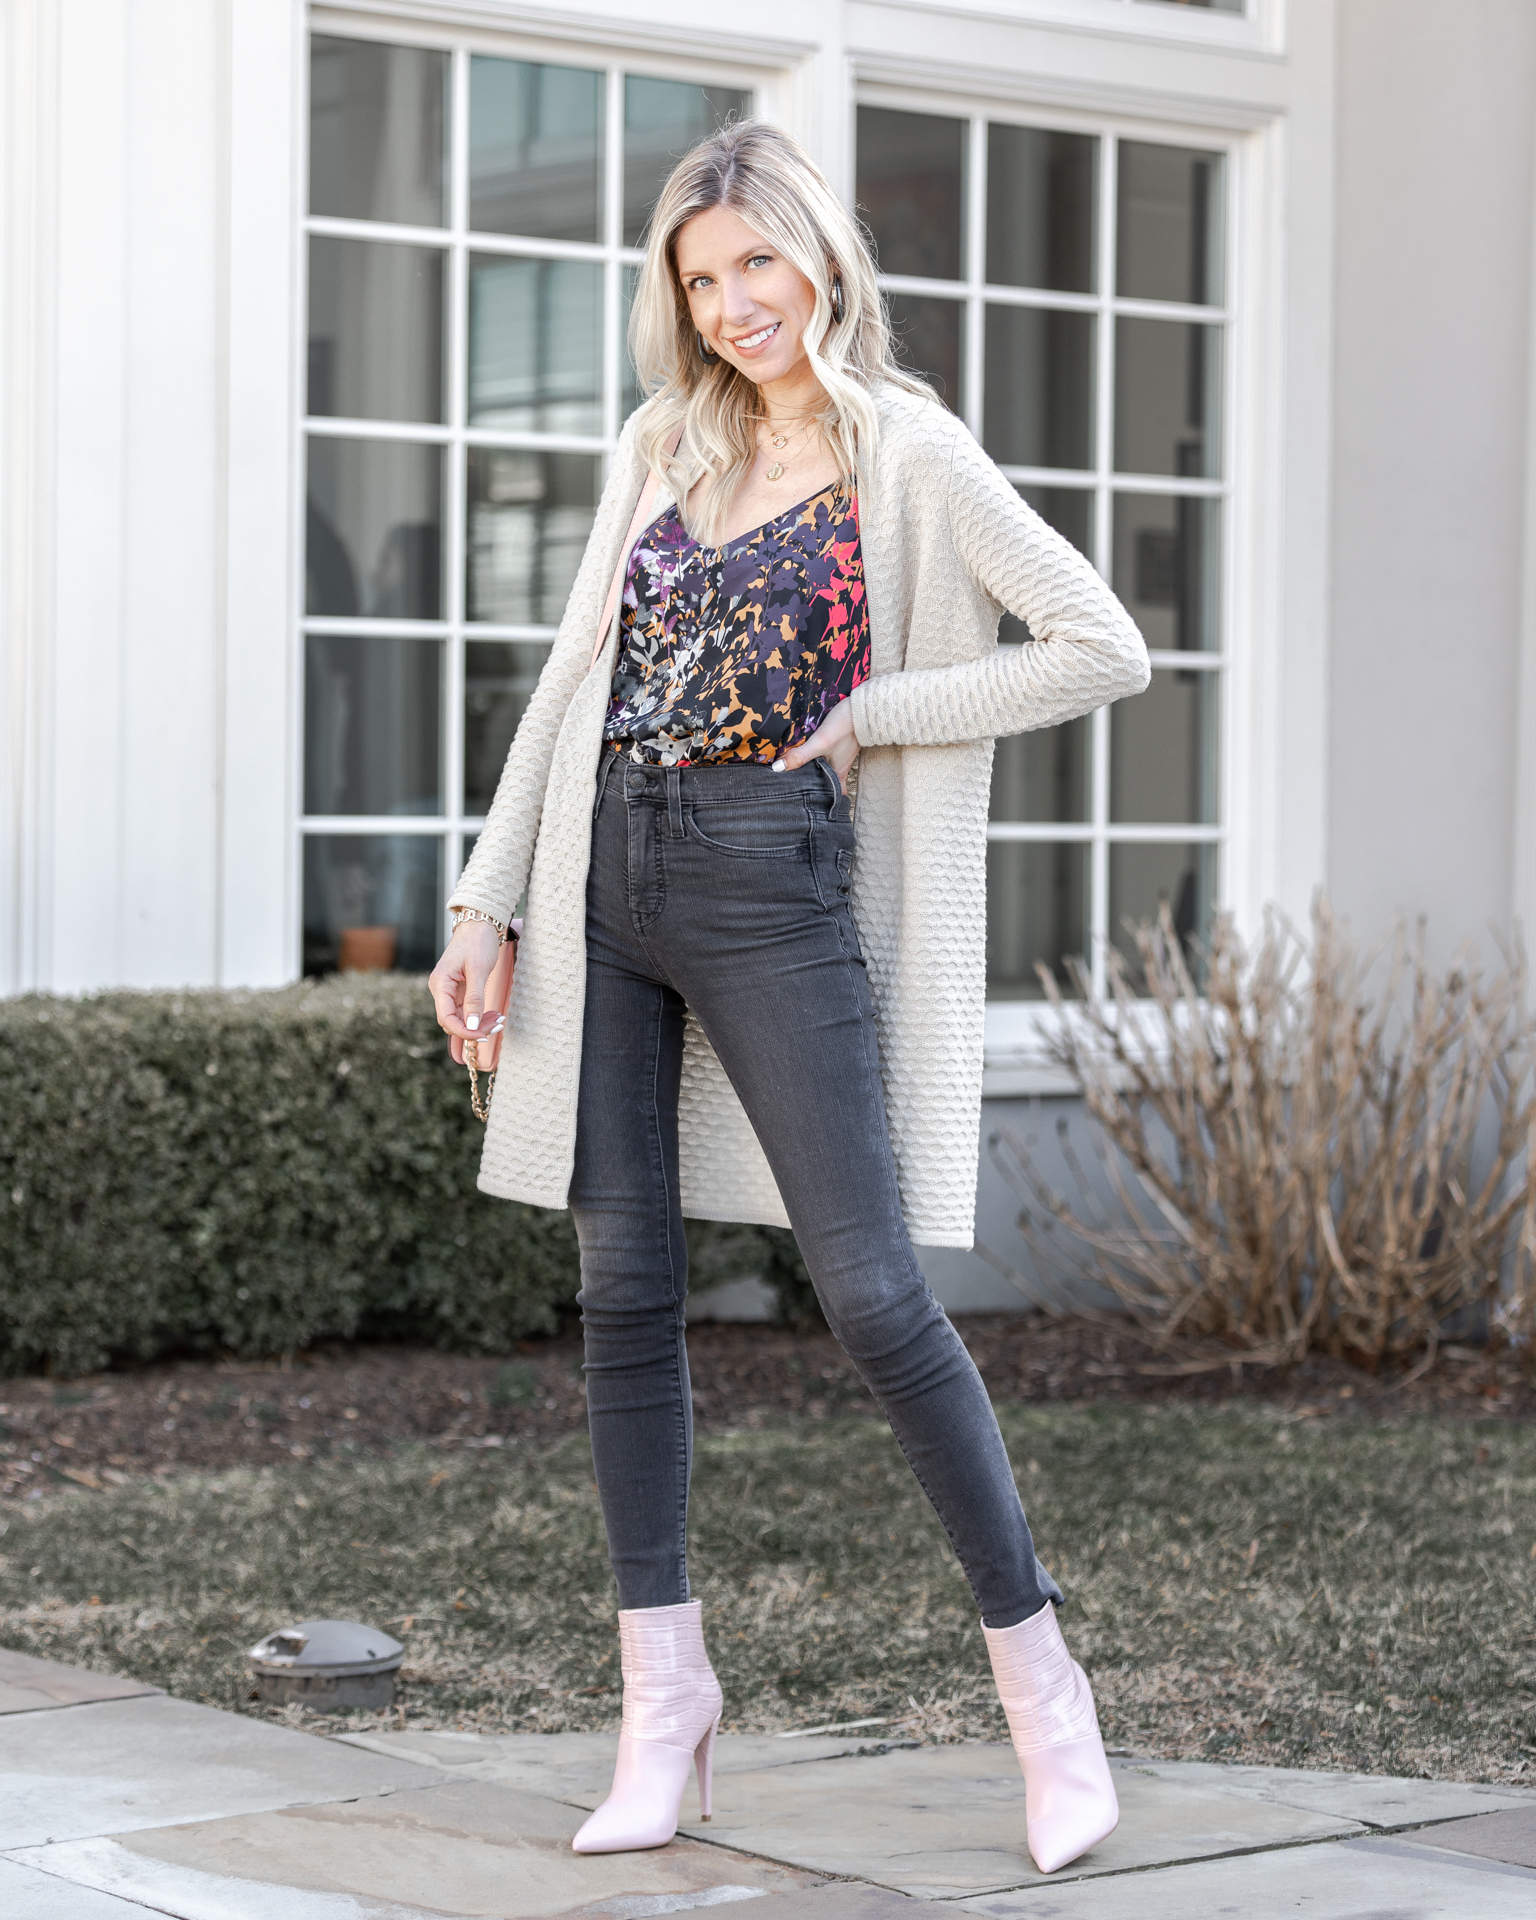 casual-weekend-outfit-vibes-the-glamorous-gal